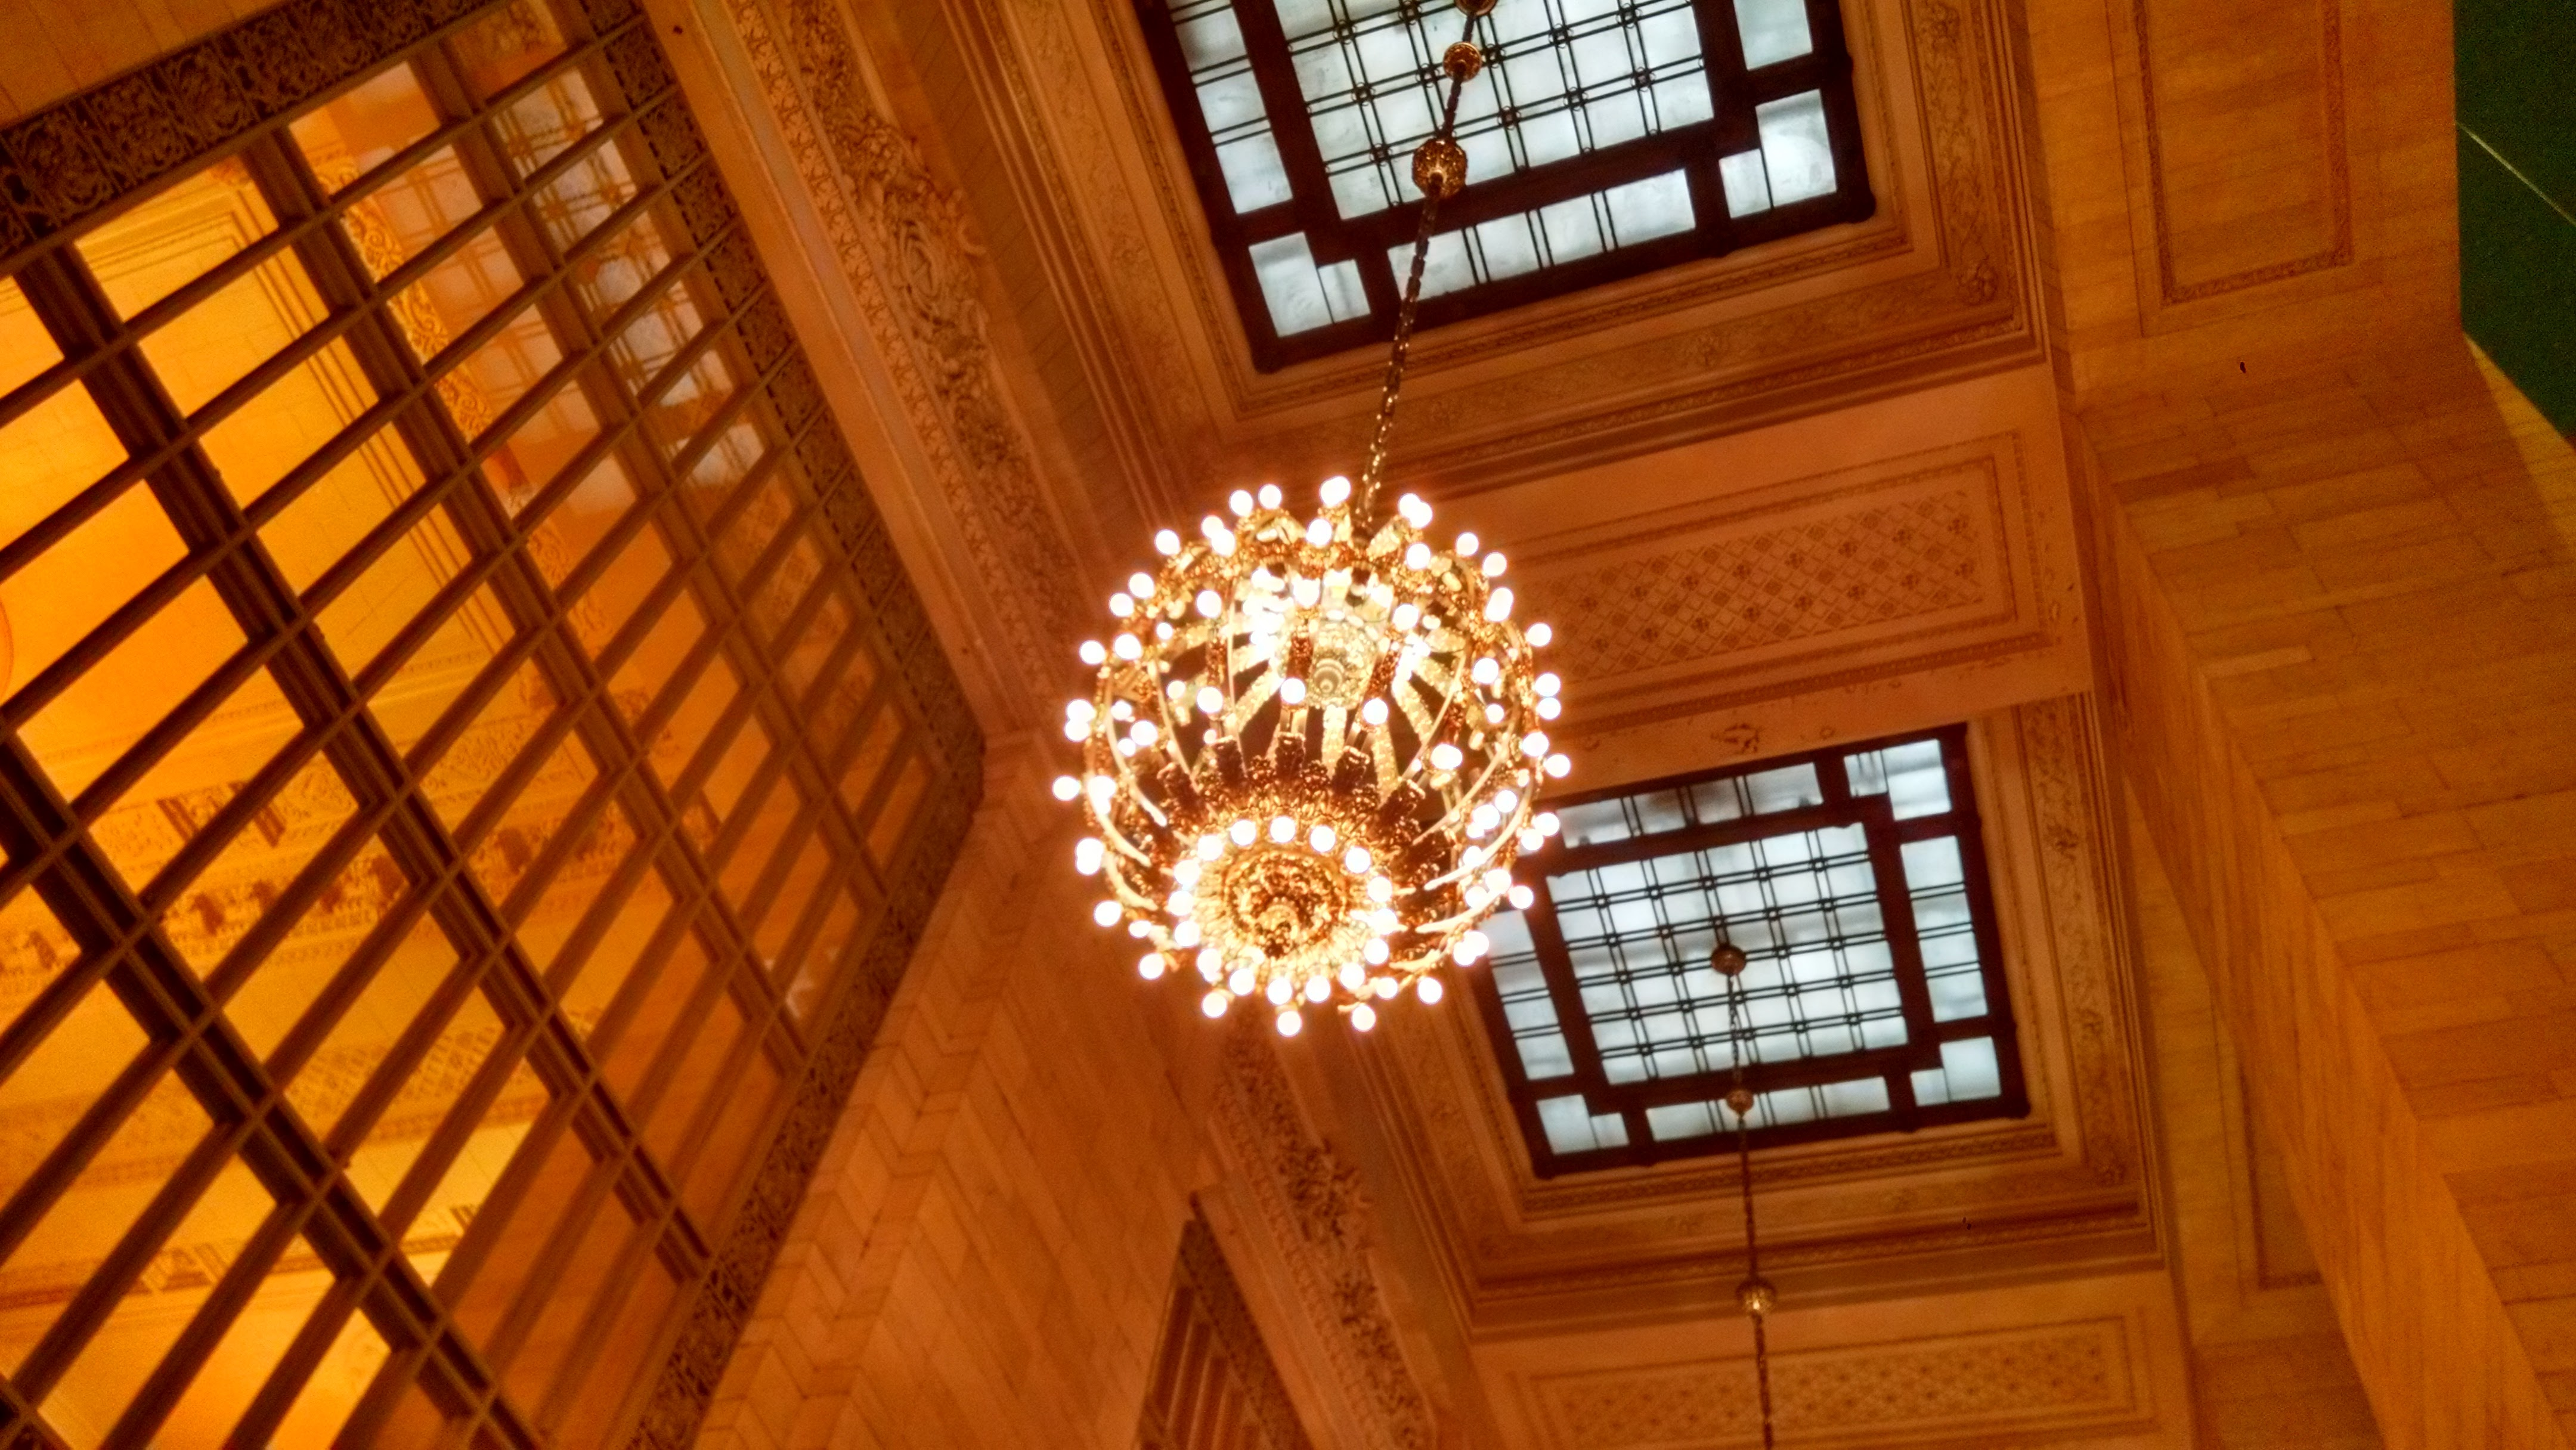 A chandelier in Grand Central